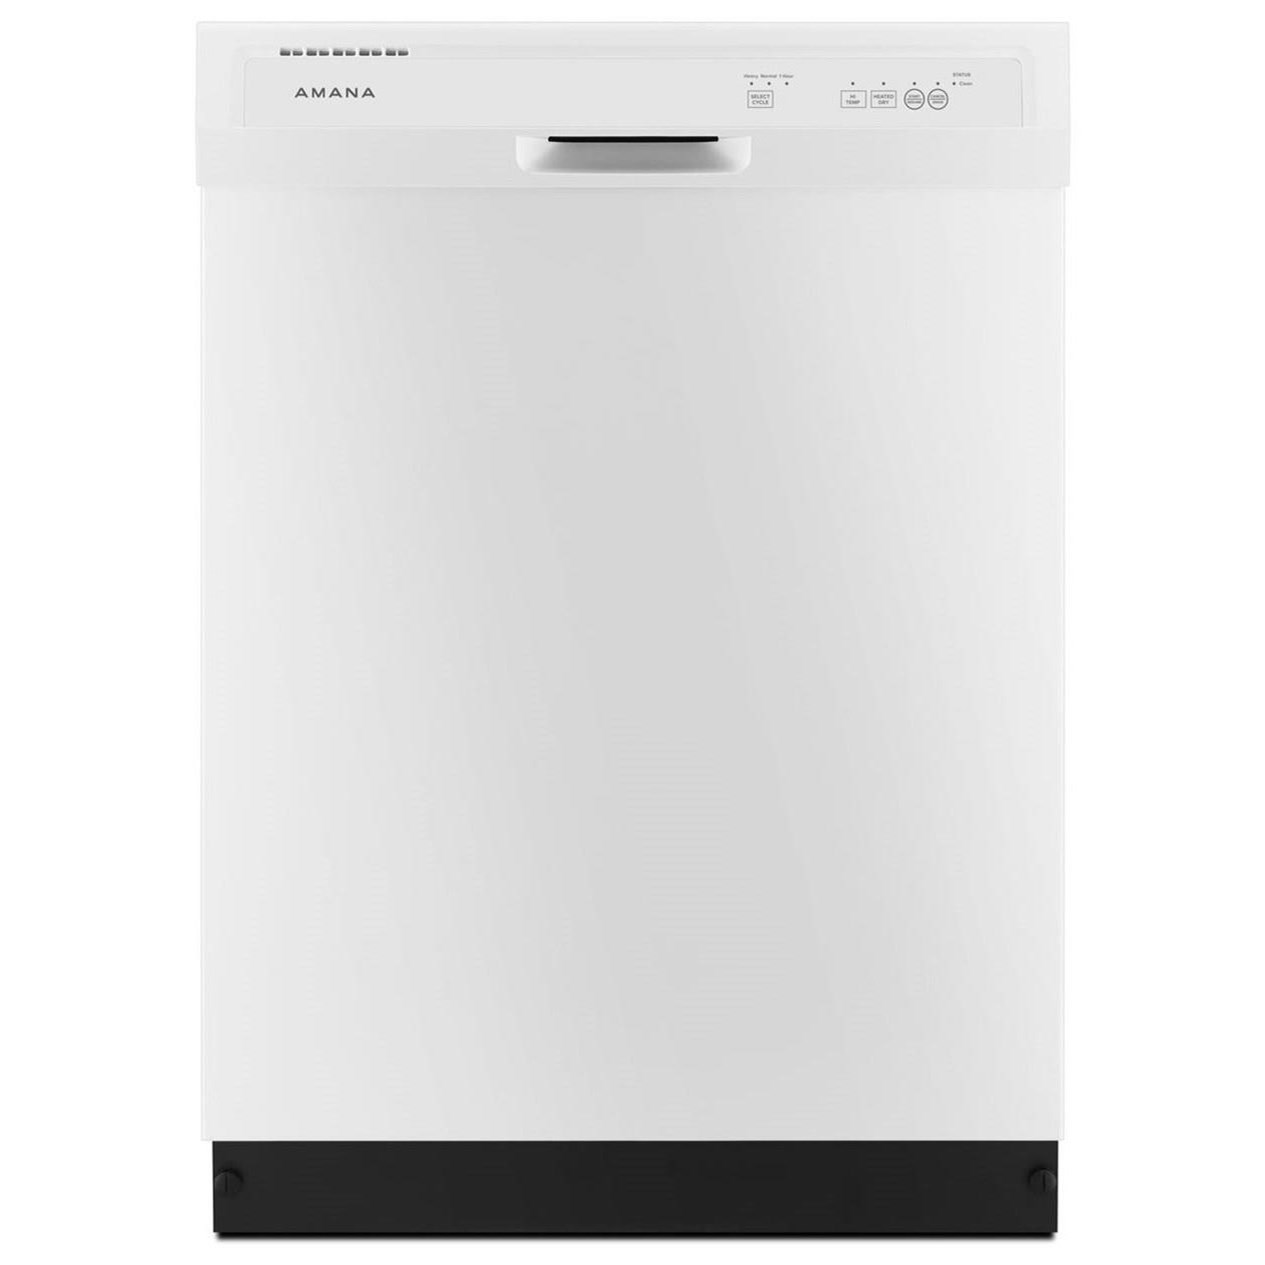 Built-In Dishwashers Dishwasher with Triple Filter Wash System by Amana at Furniture and ApplianceMart